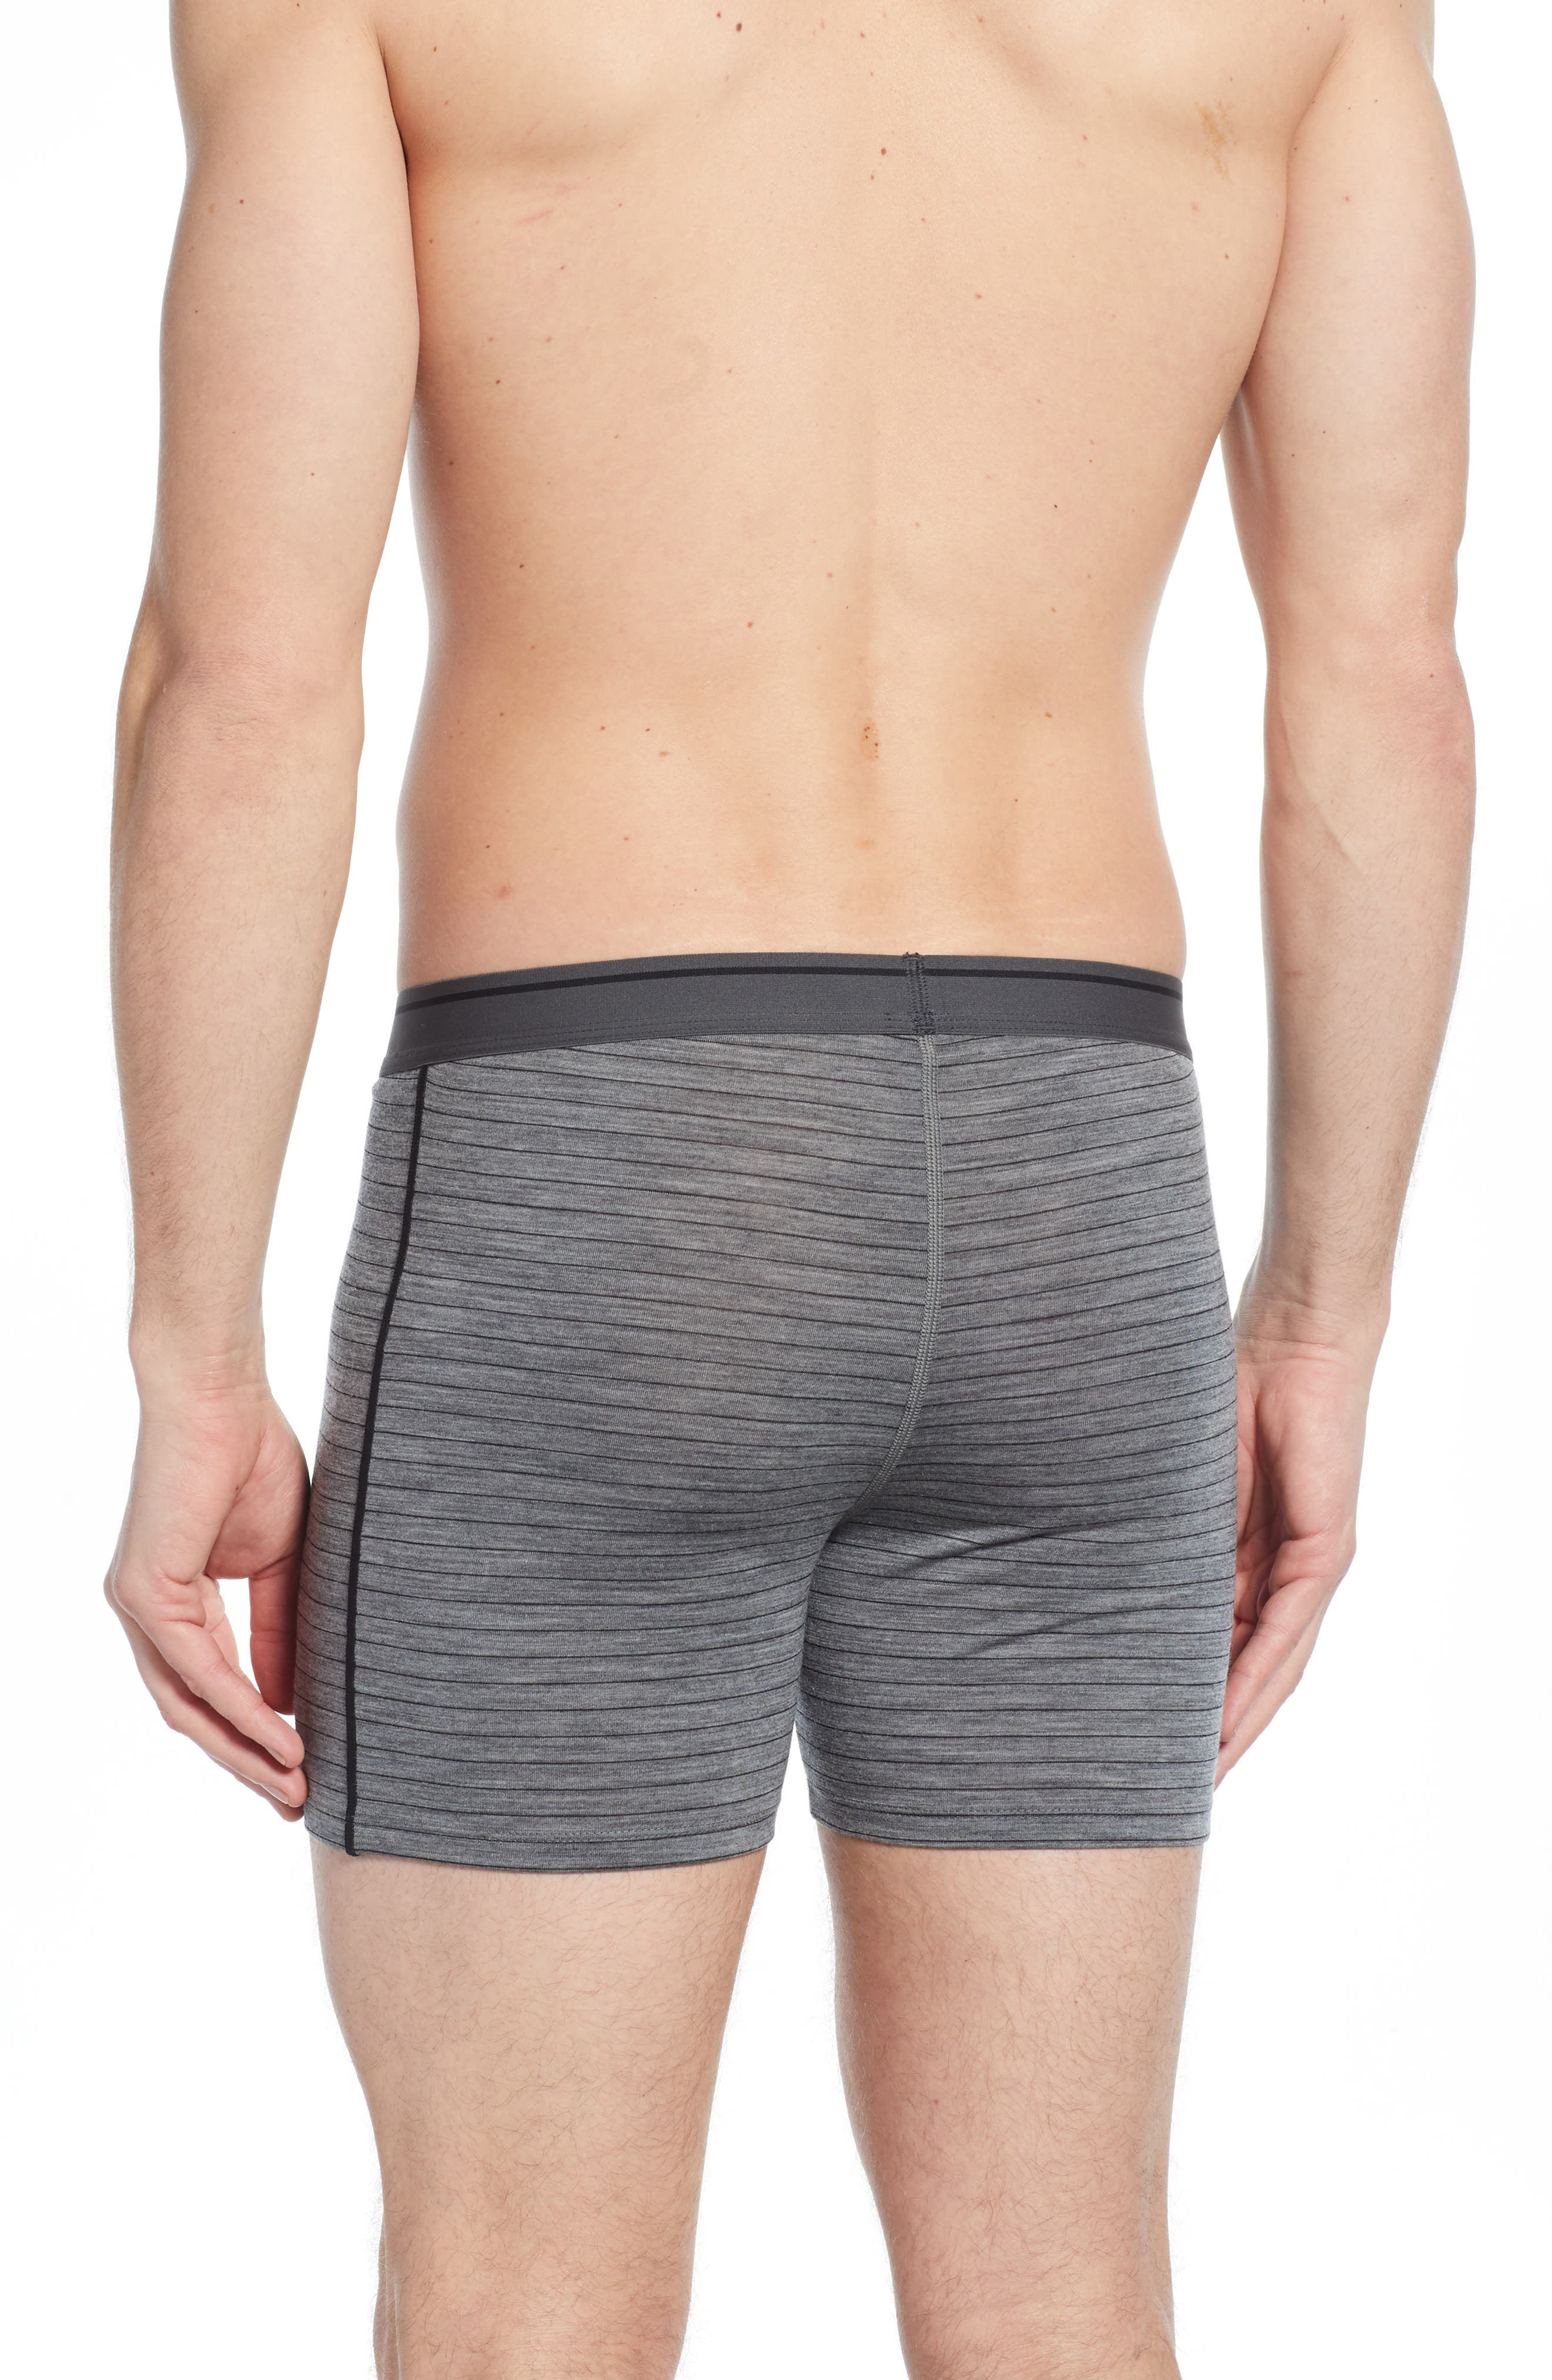 Anatomica Boxers,                             Alternate thumbnail 2, color,                             GRITSTONE HEATHER/ BLACK